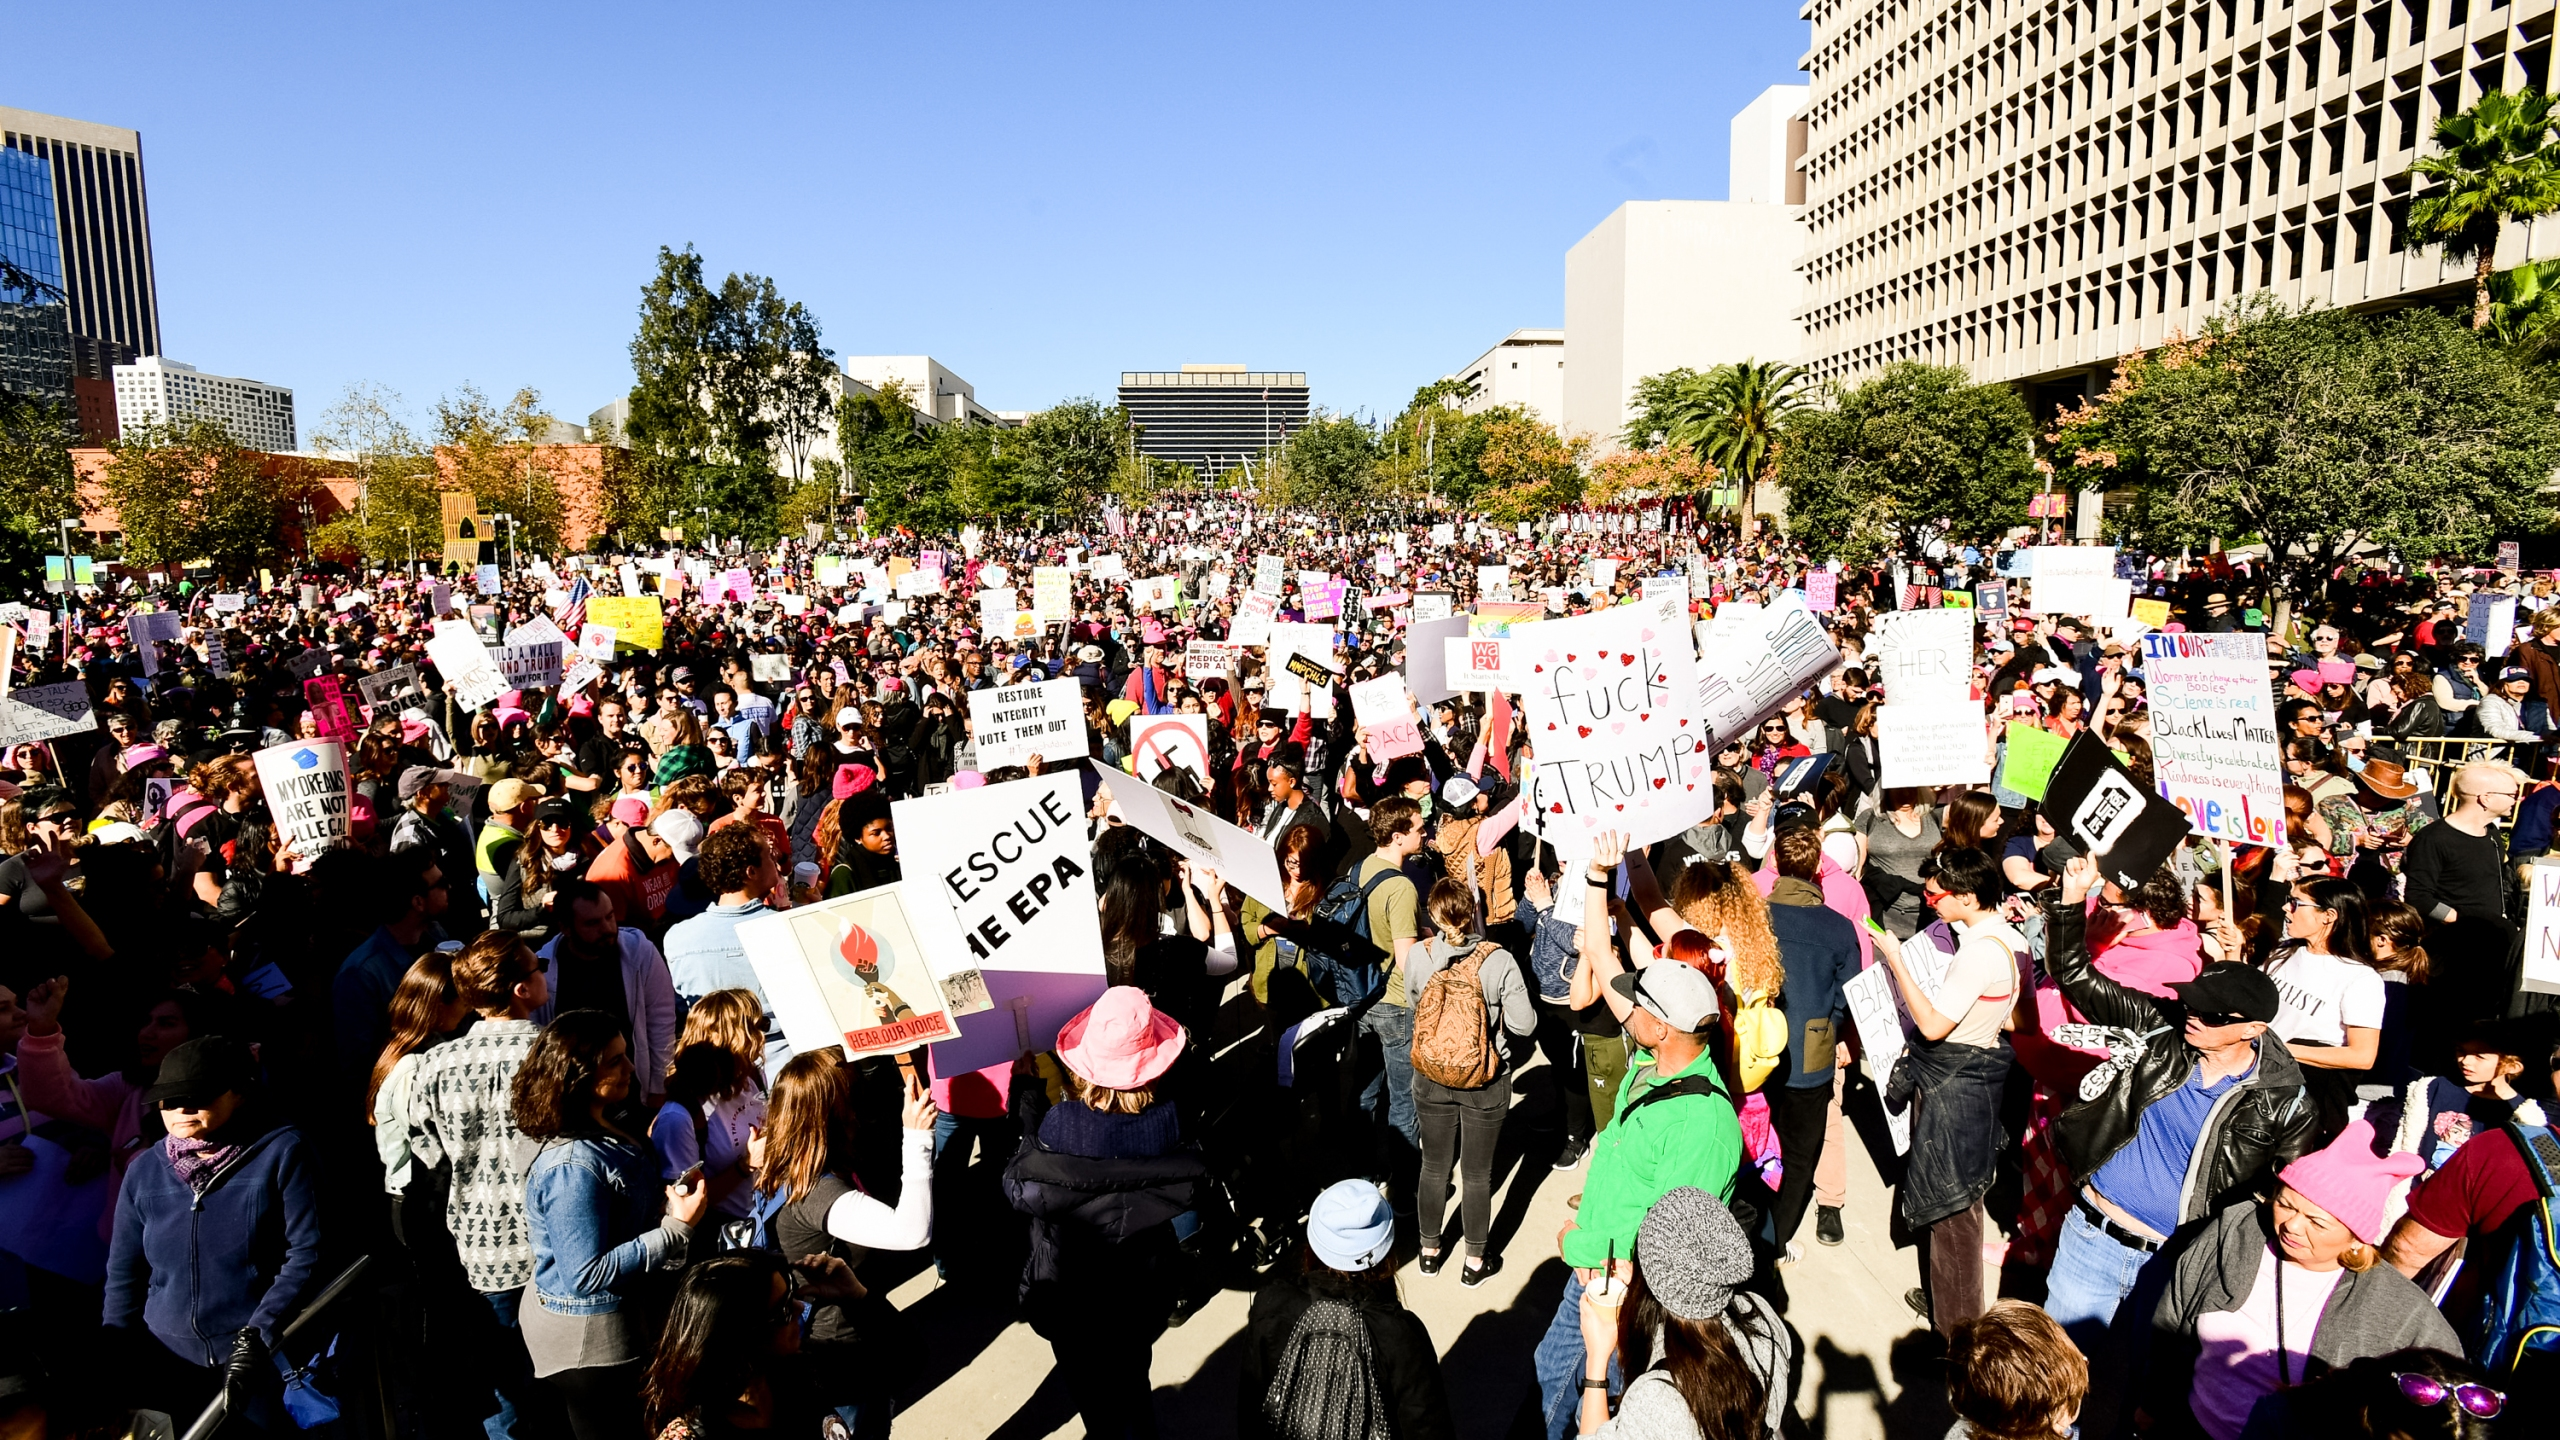 A view of the crowd at the women's march Los Angeles on Jan. 20, 2018 in Los Angeles. (Credit: Emma McIntyre/Getty Images)